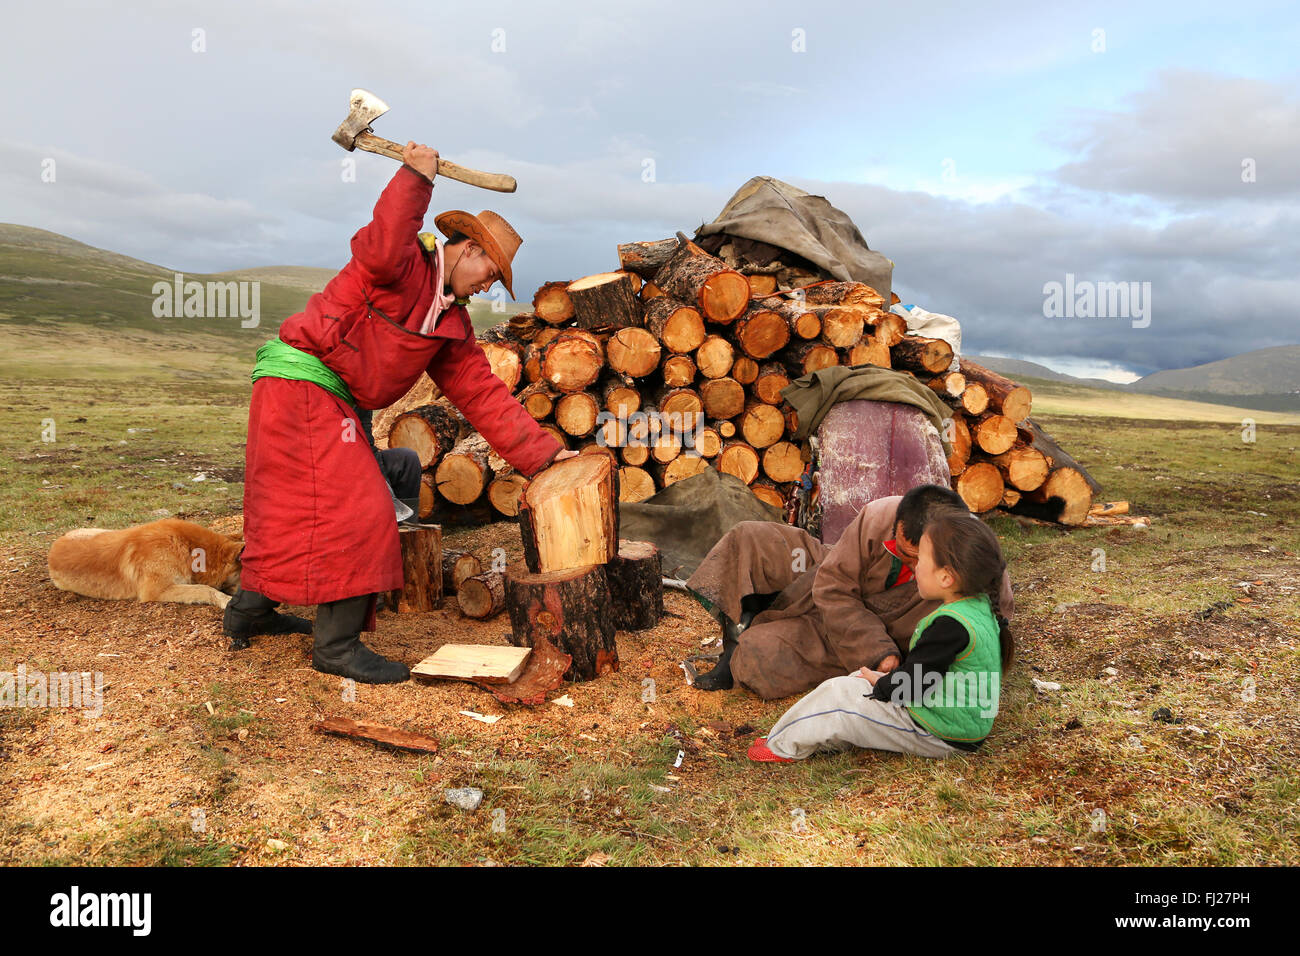 Tsaatan man cutting wood with ax for fire, , Tsaatan Dukha people , nomadic reindeer herders , Mongolia - Stock Image